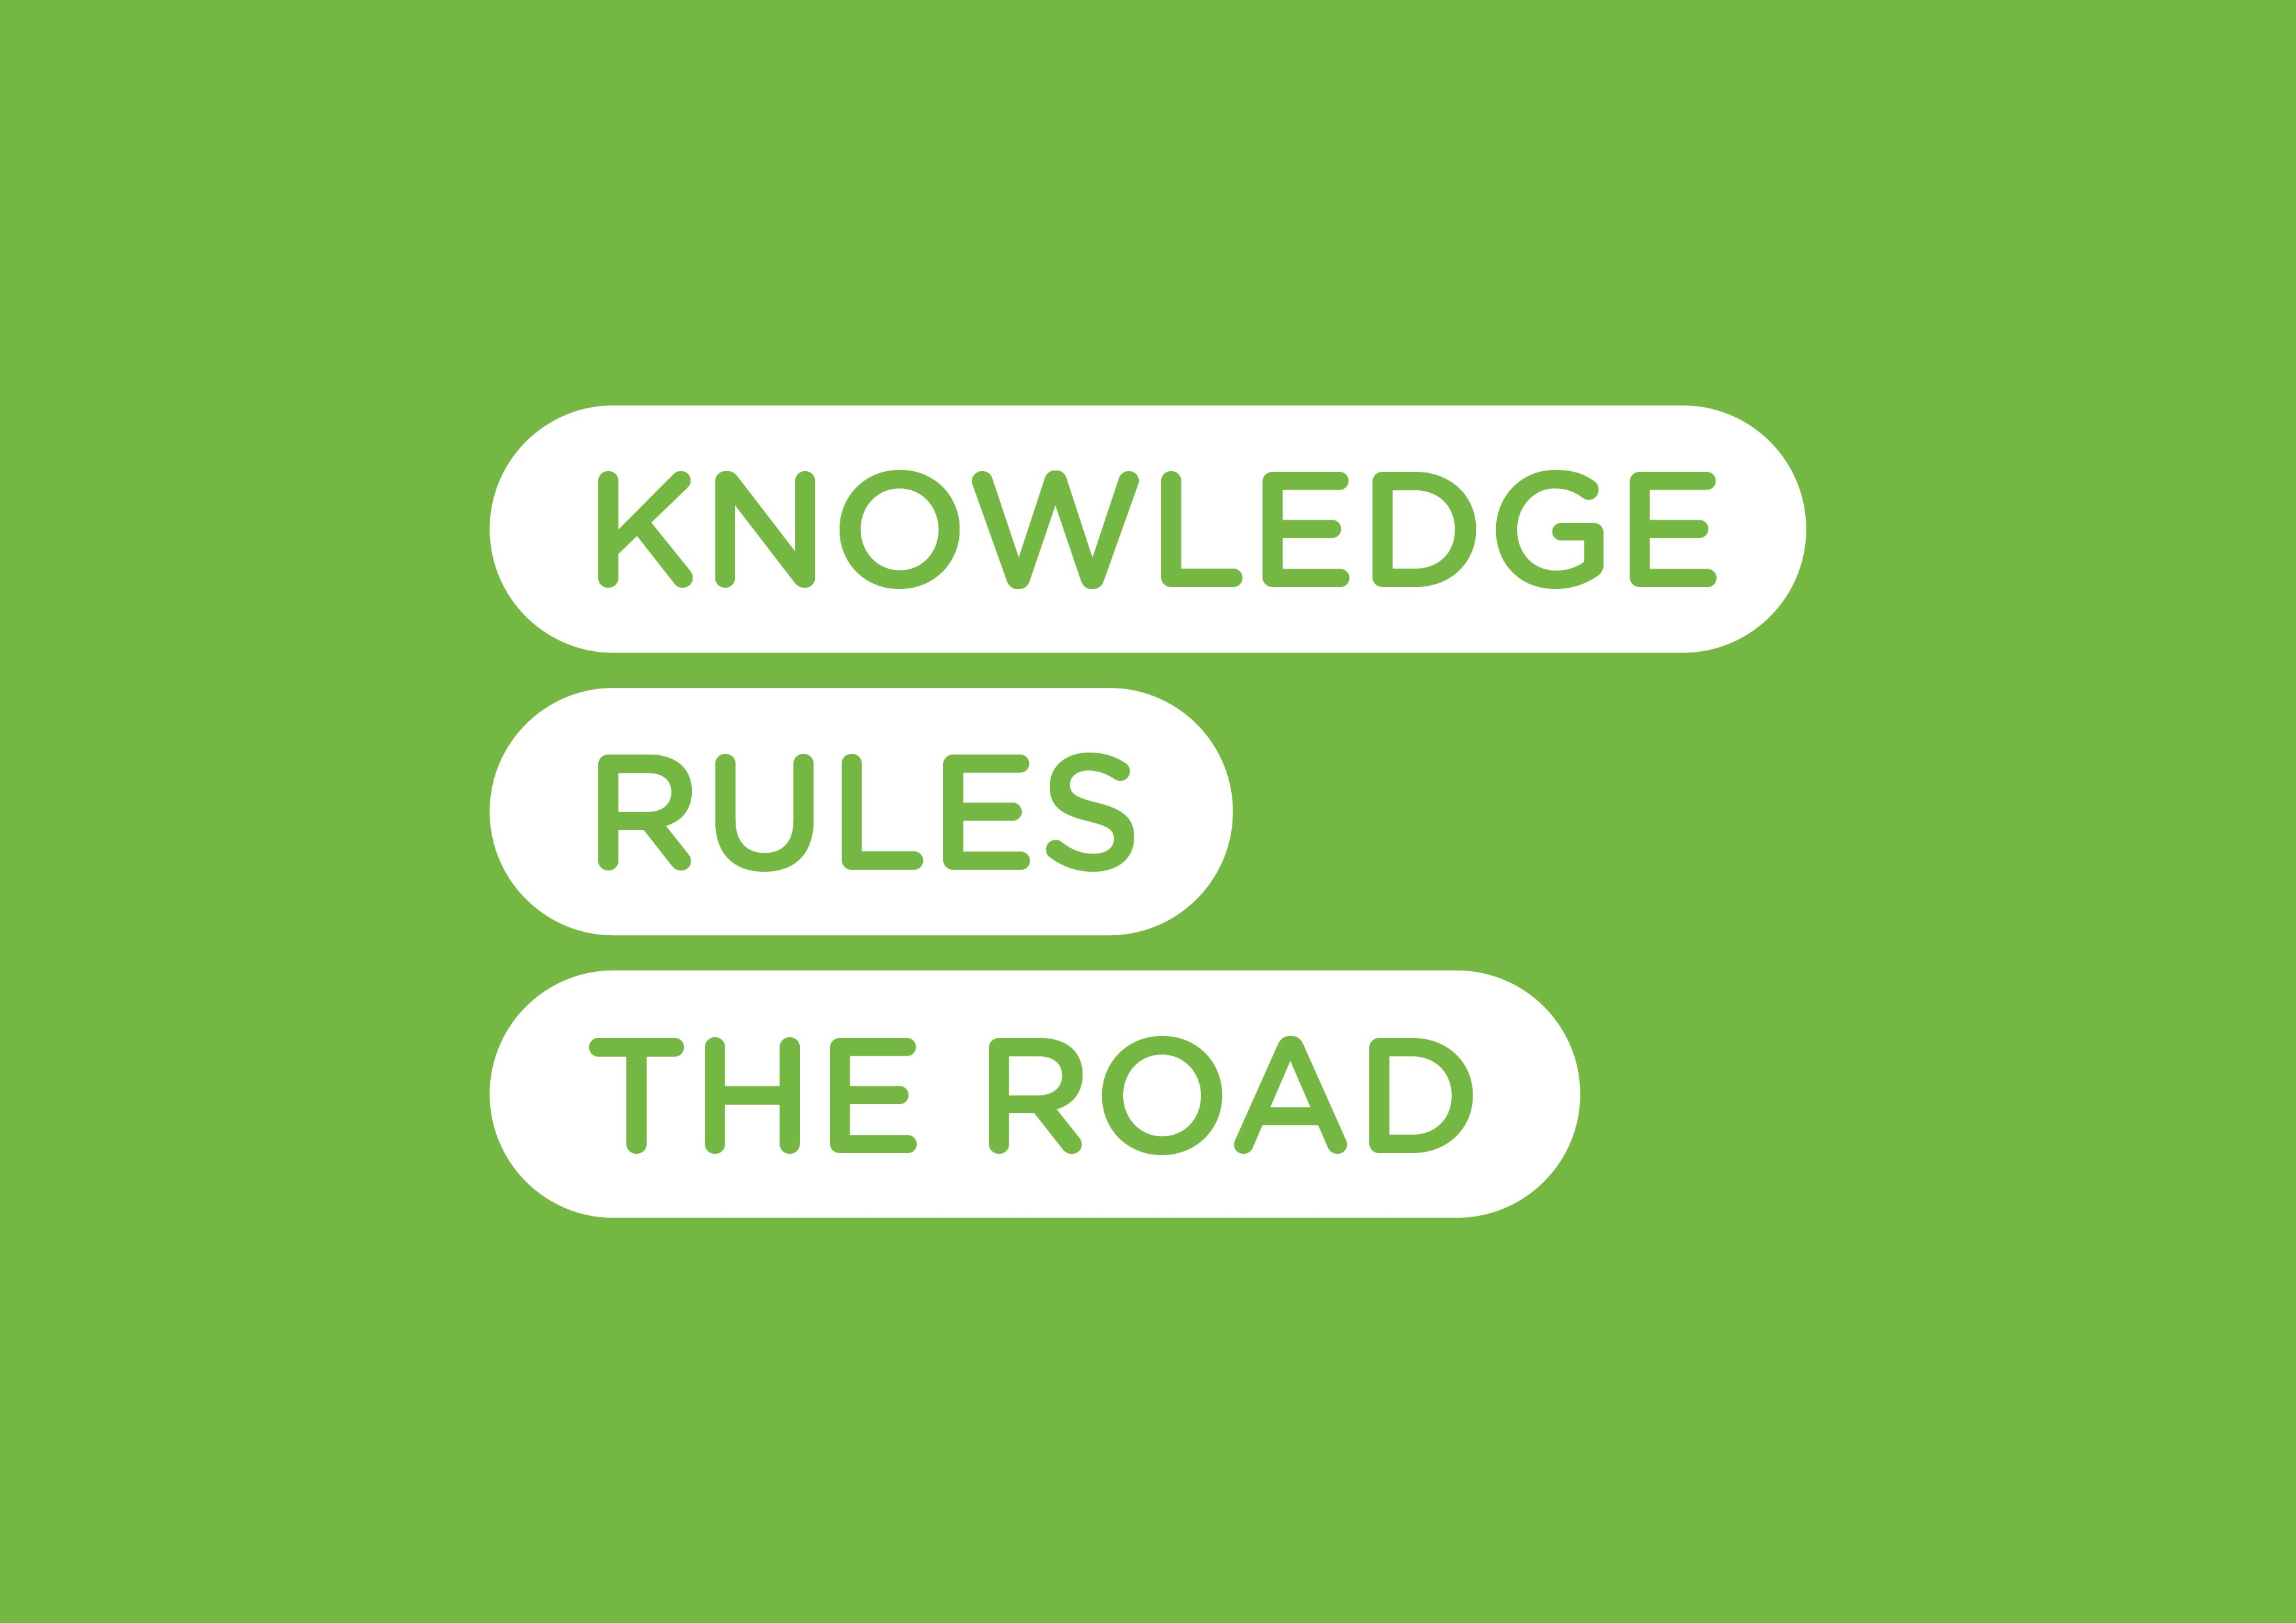 Knowledge Rules the Road